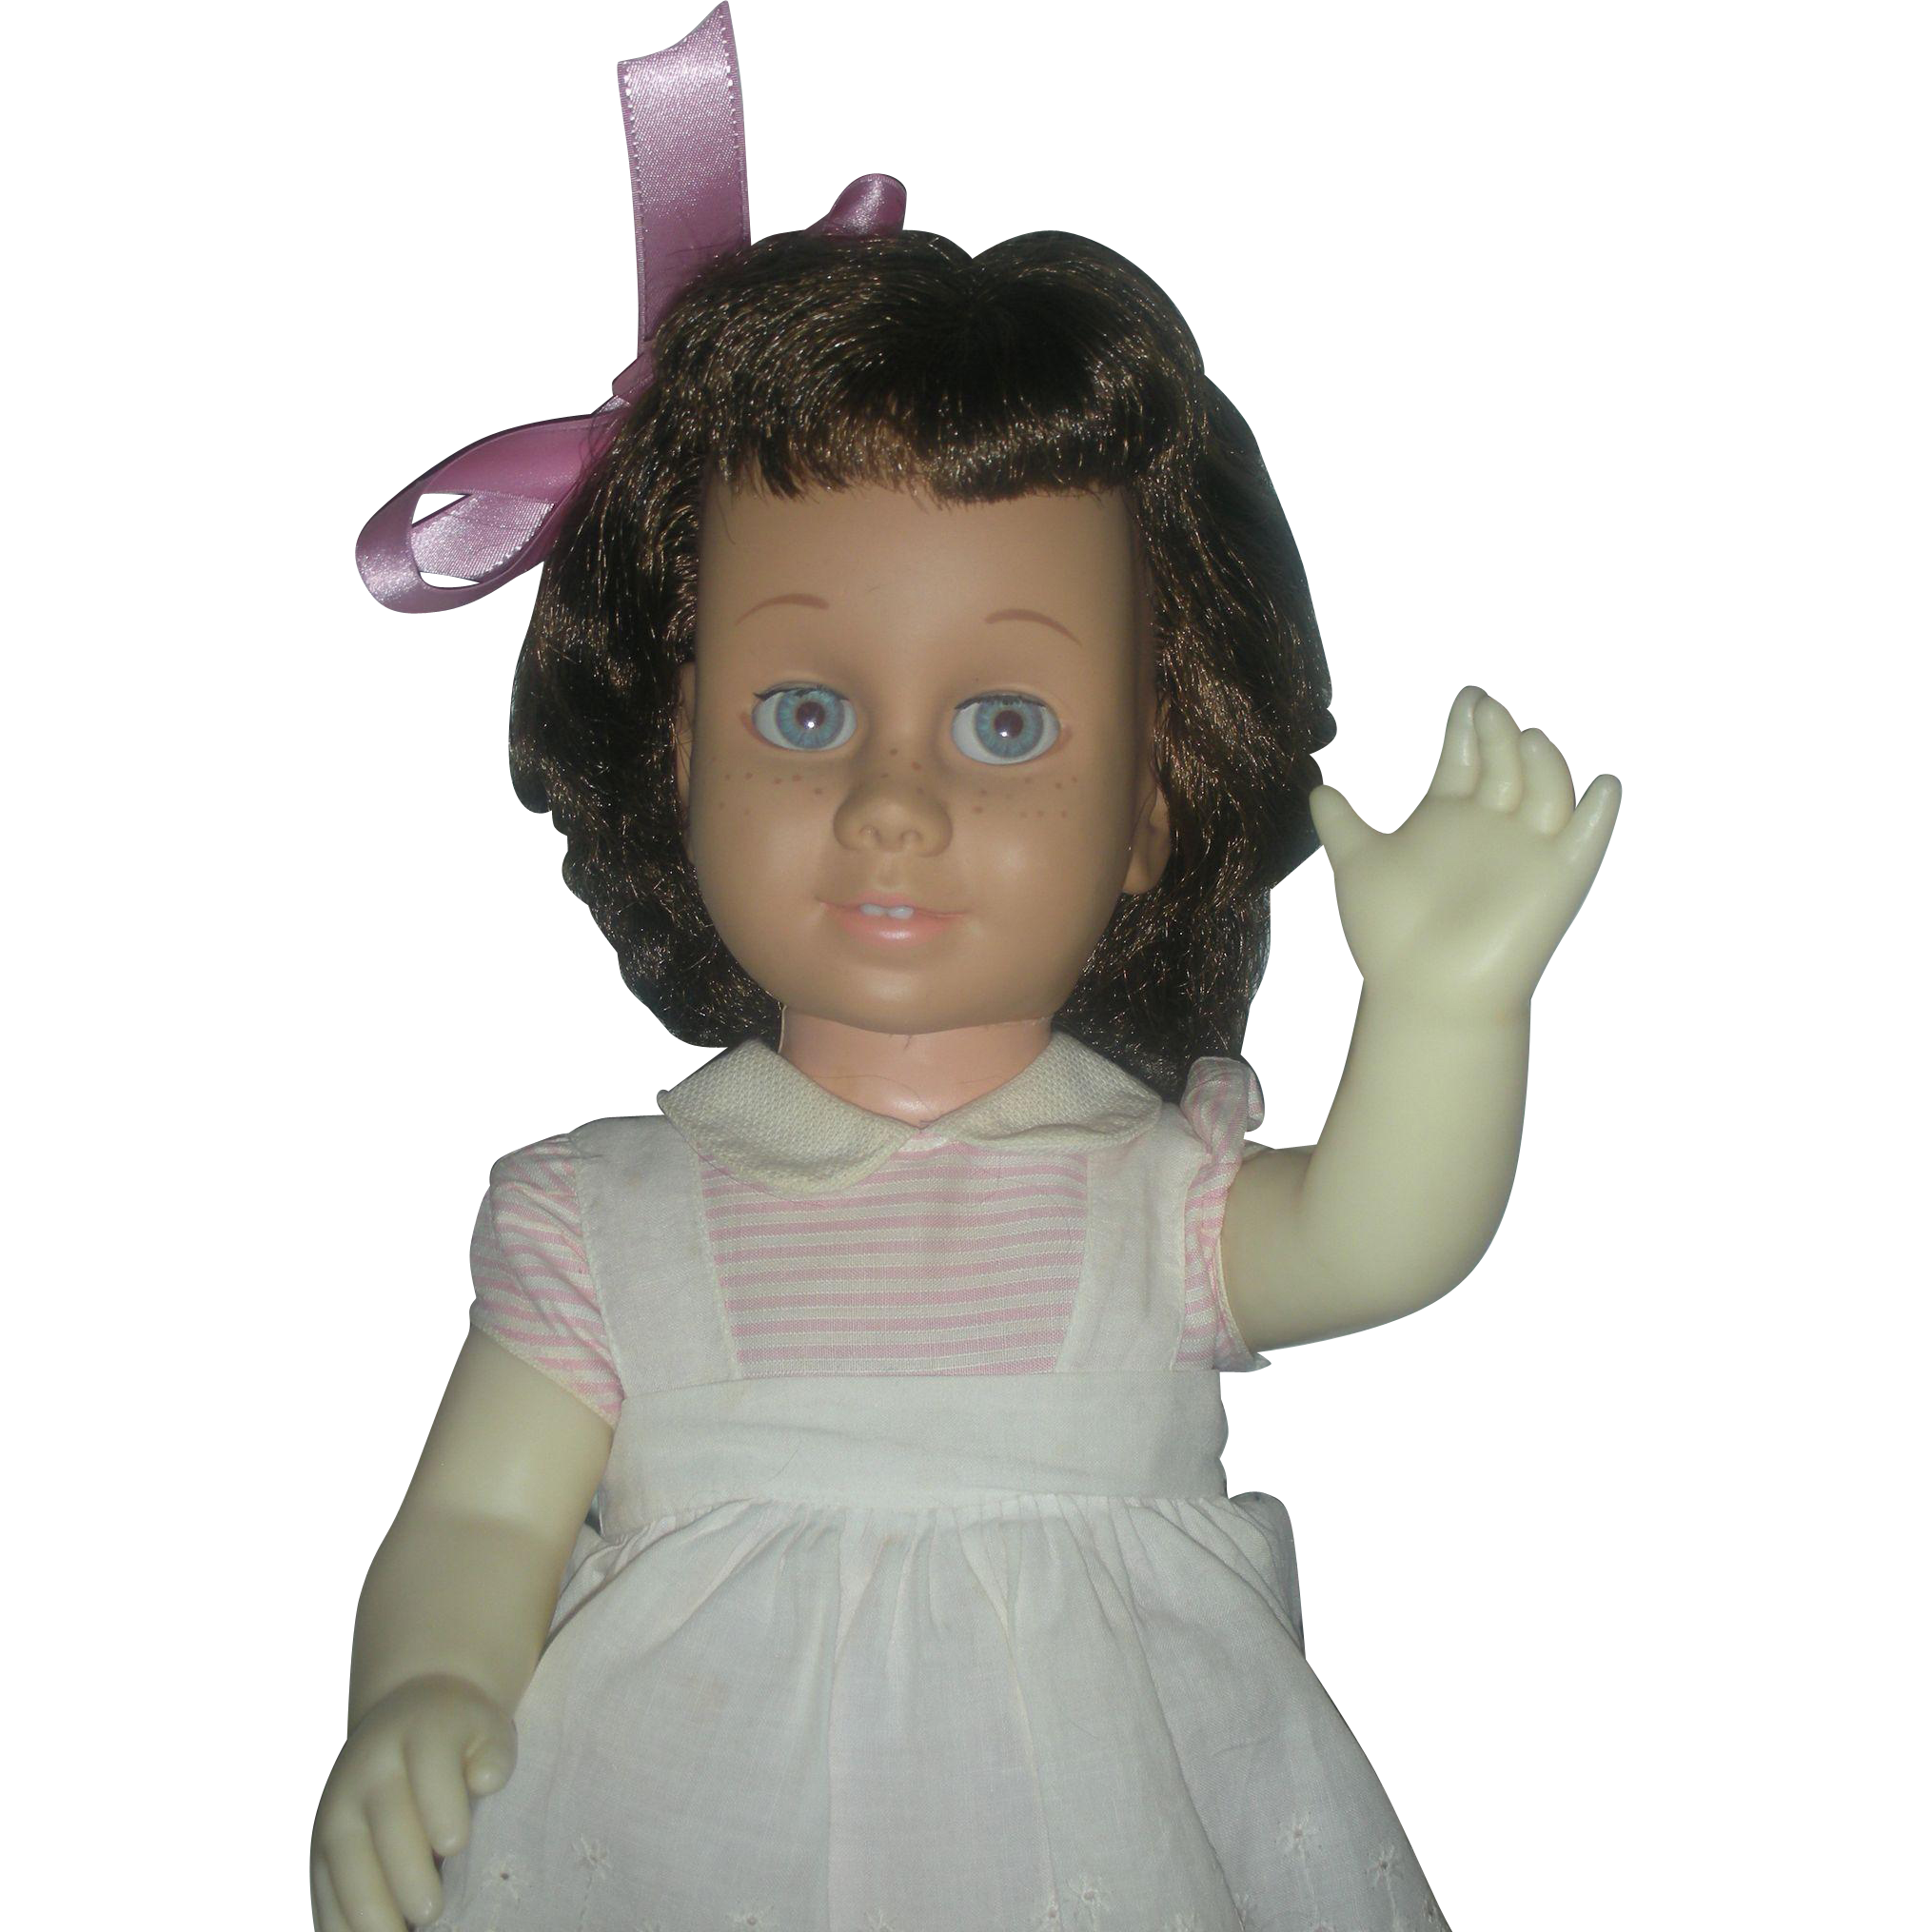 Vintage Brunette Mattel 1960s Chatty Cathy Doll Wearing Original Peppermint Stick Dress